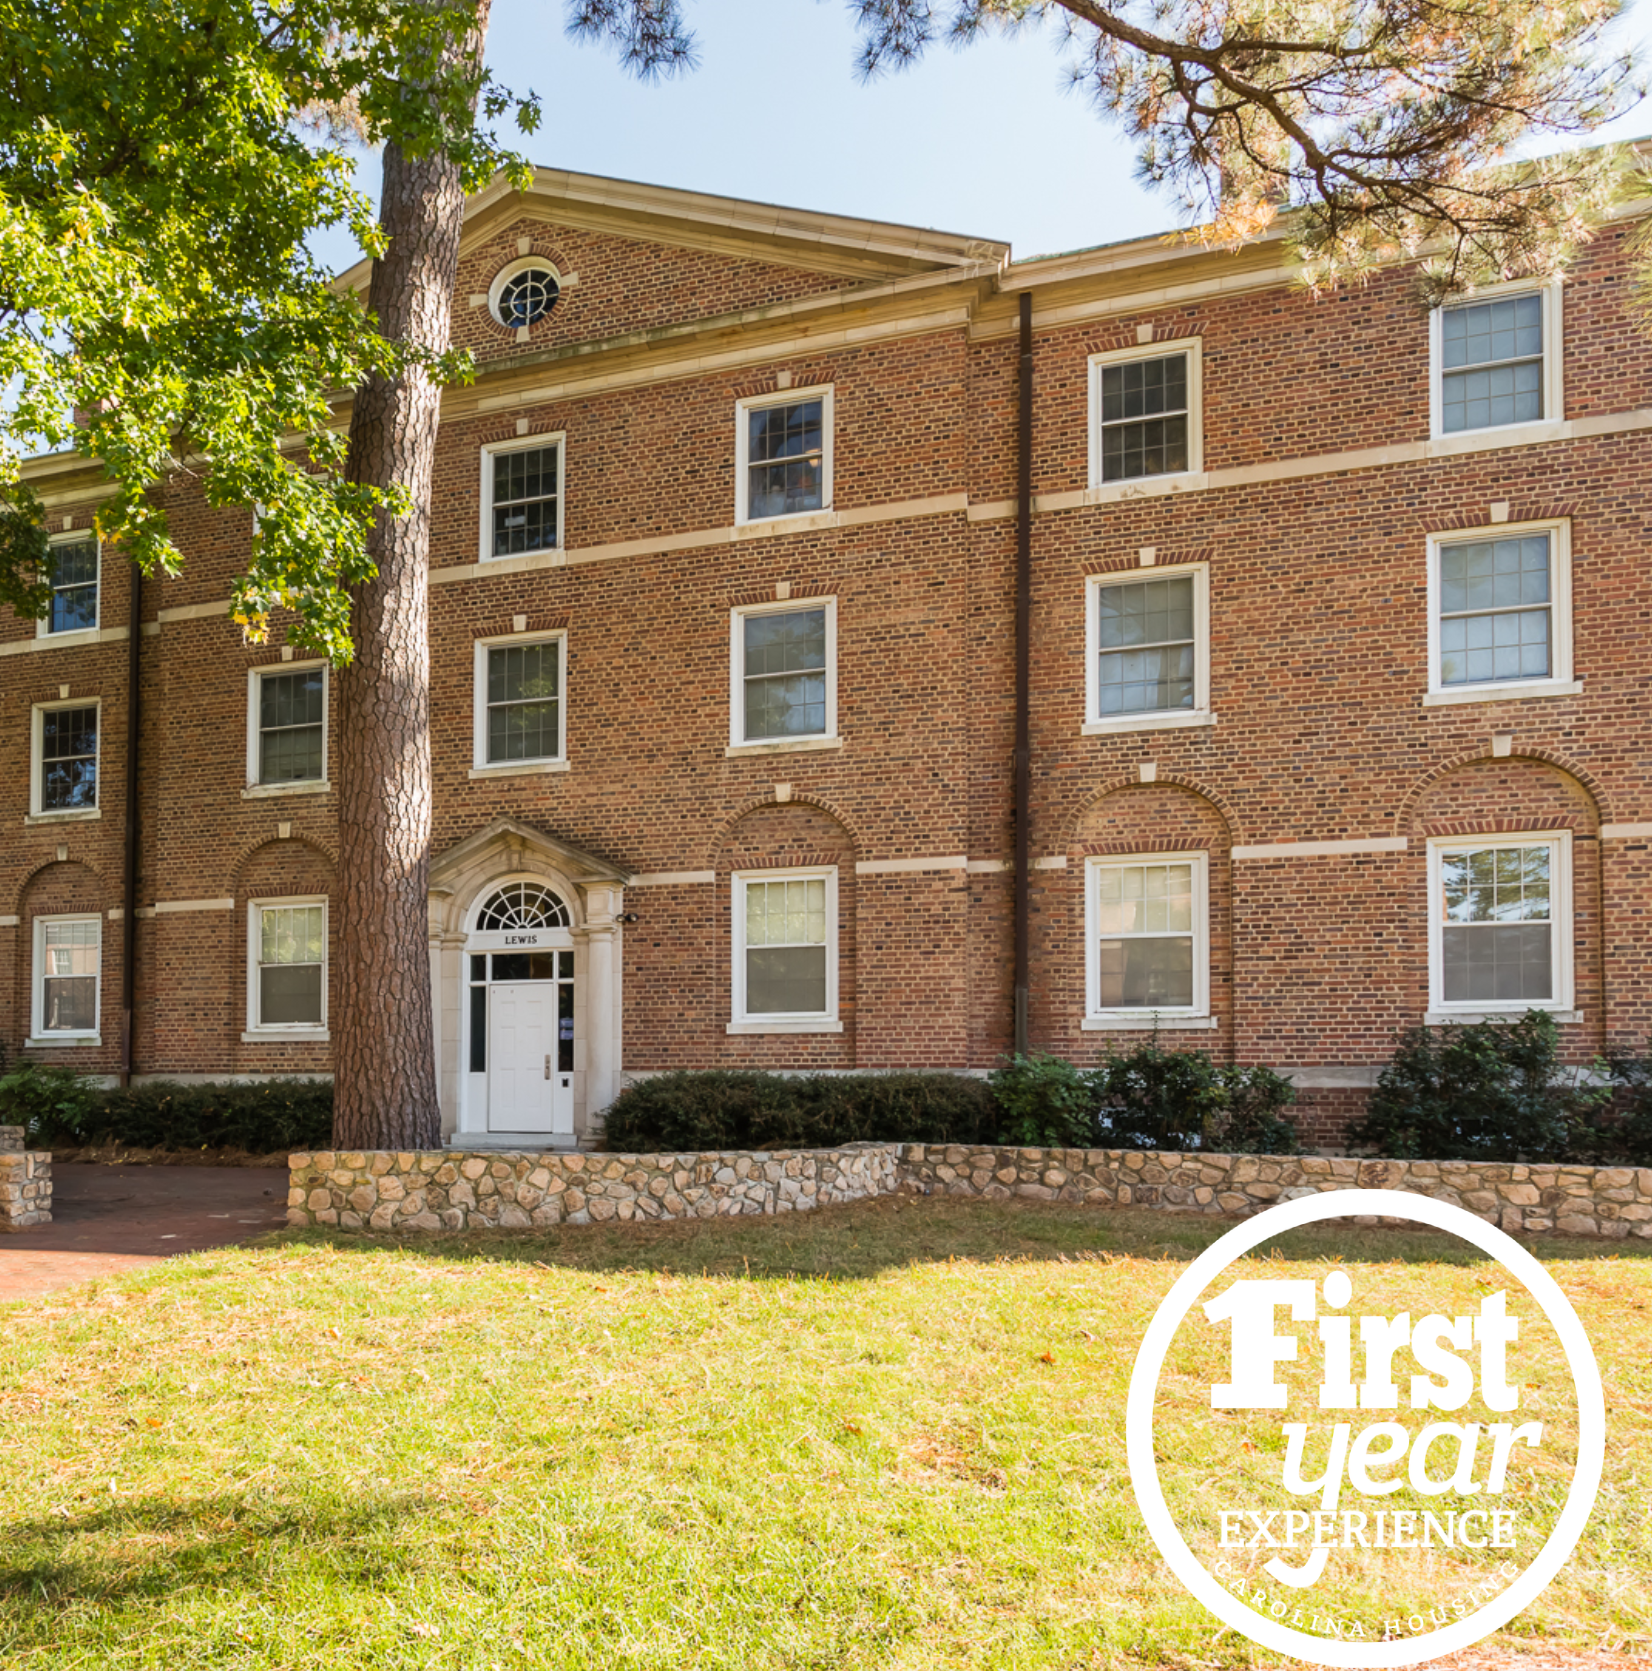 Lewis residence hall with the First Year Experience logo in the right corner.